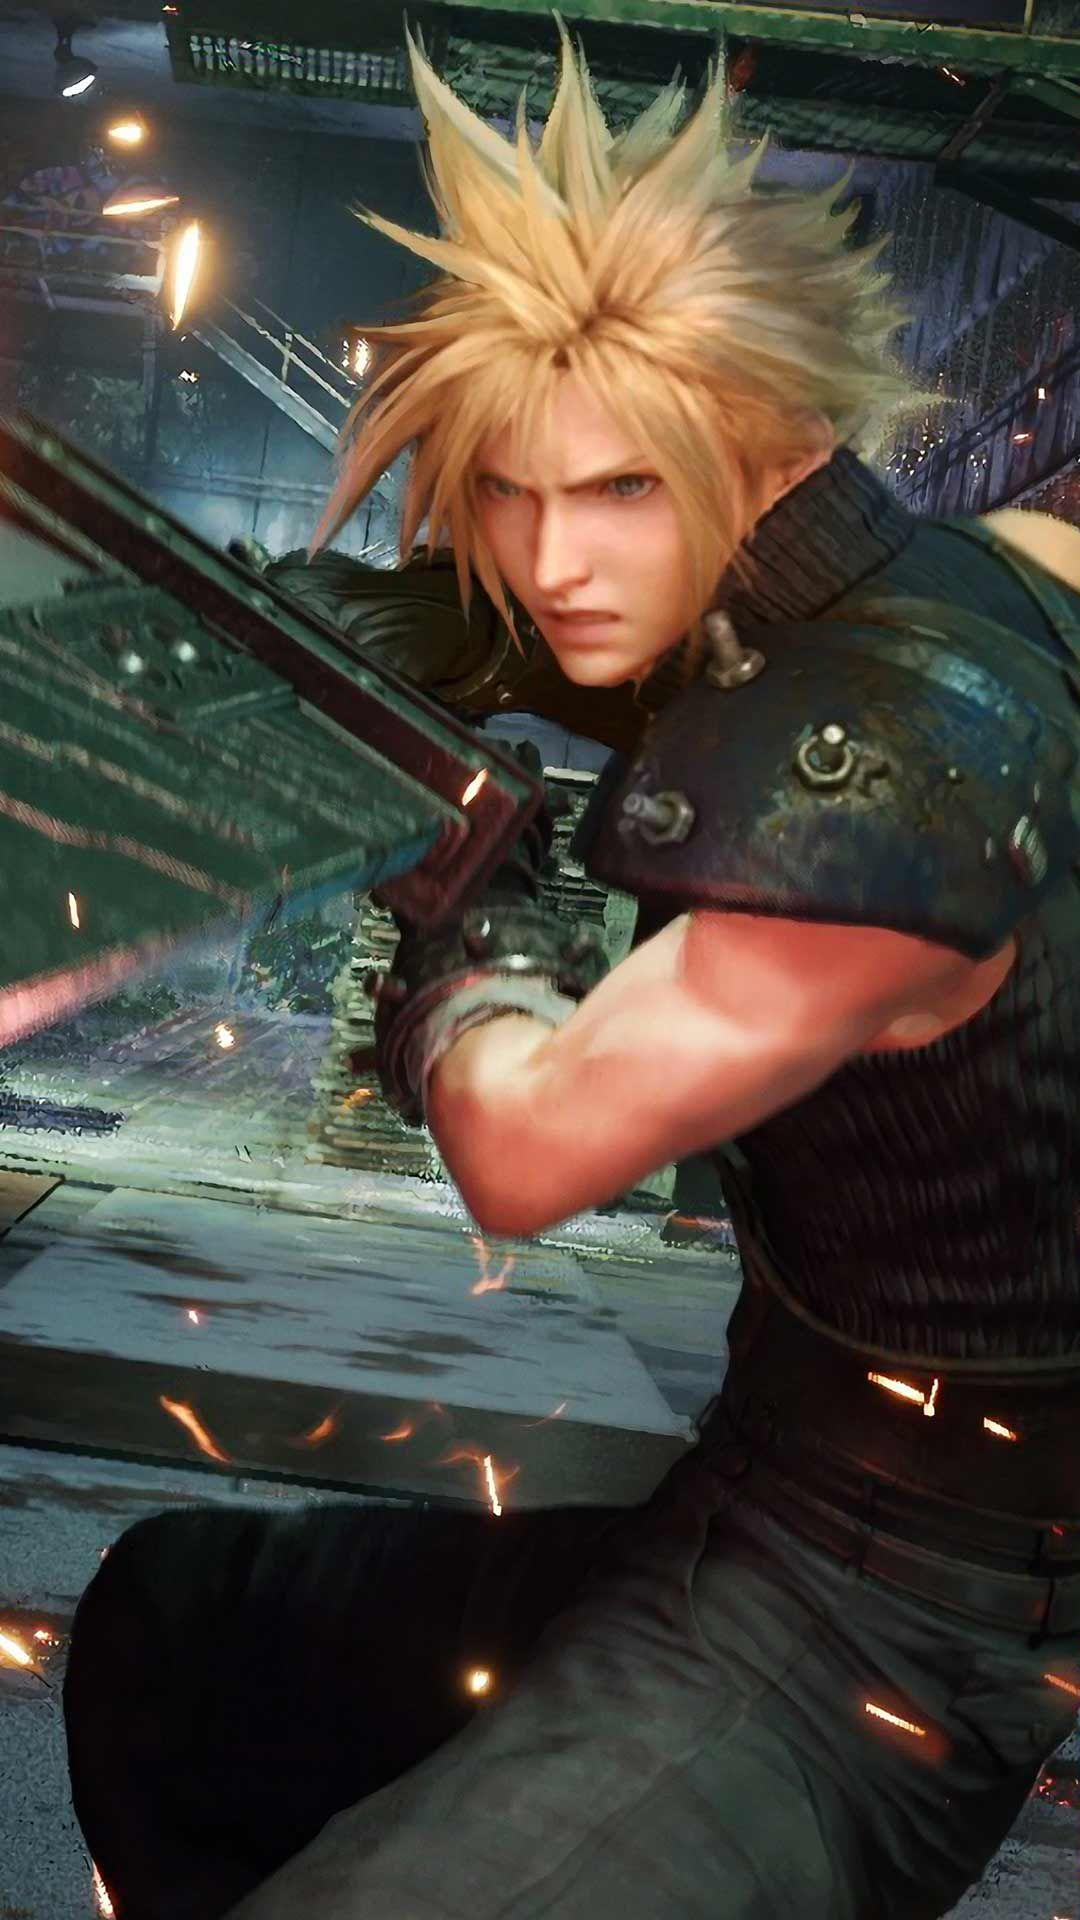 Final Fantasy 7 Remake Wallpaper Hd Phone Backgrounds Ps4 Game Art Poster Logo On Iphone Andro Final Fantasy Vii Cloud Final Fantasy Final Fantasy Cloud Strife